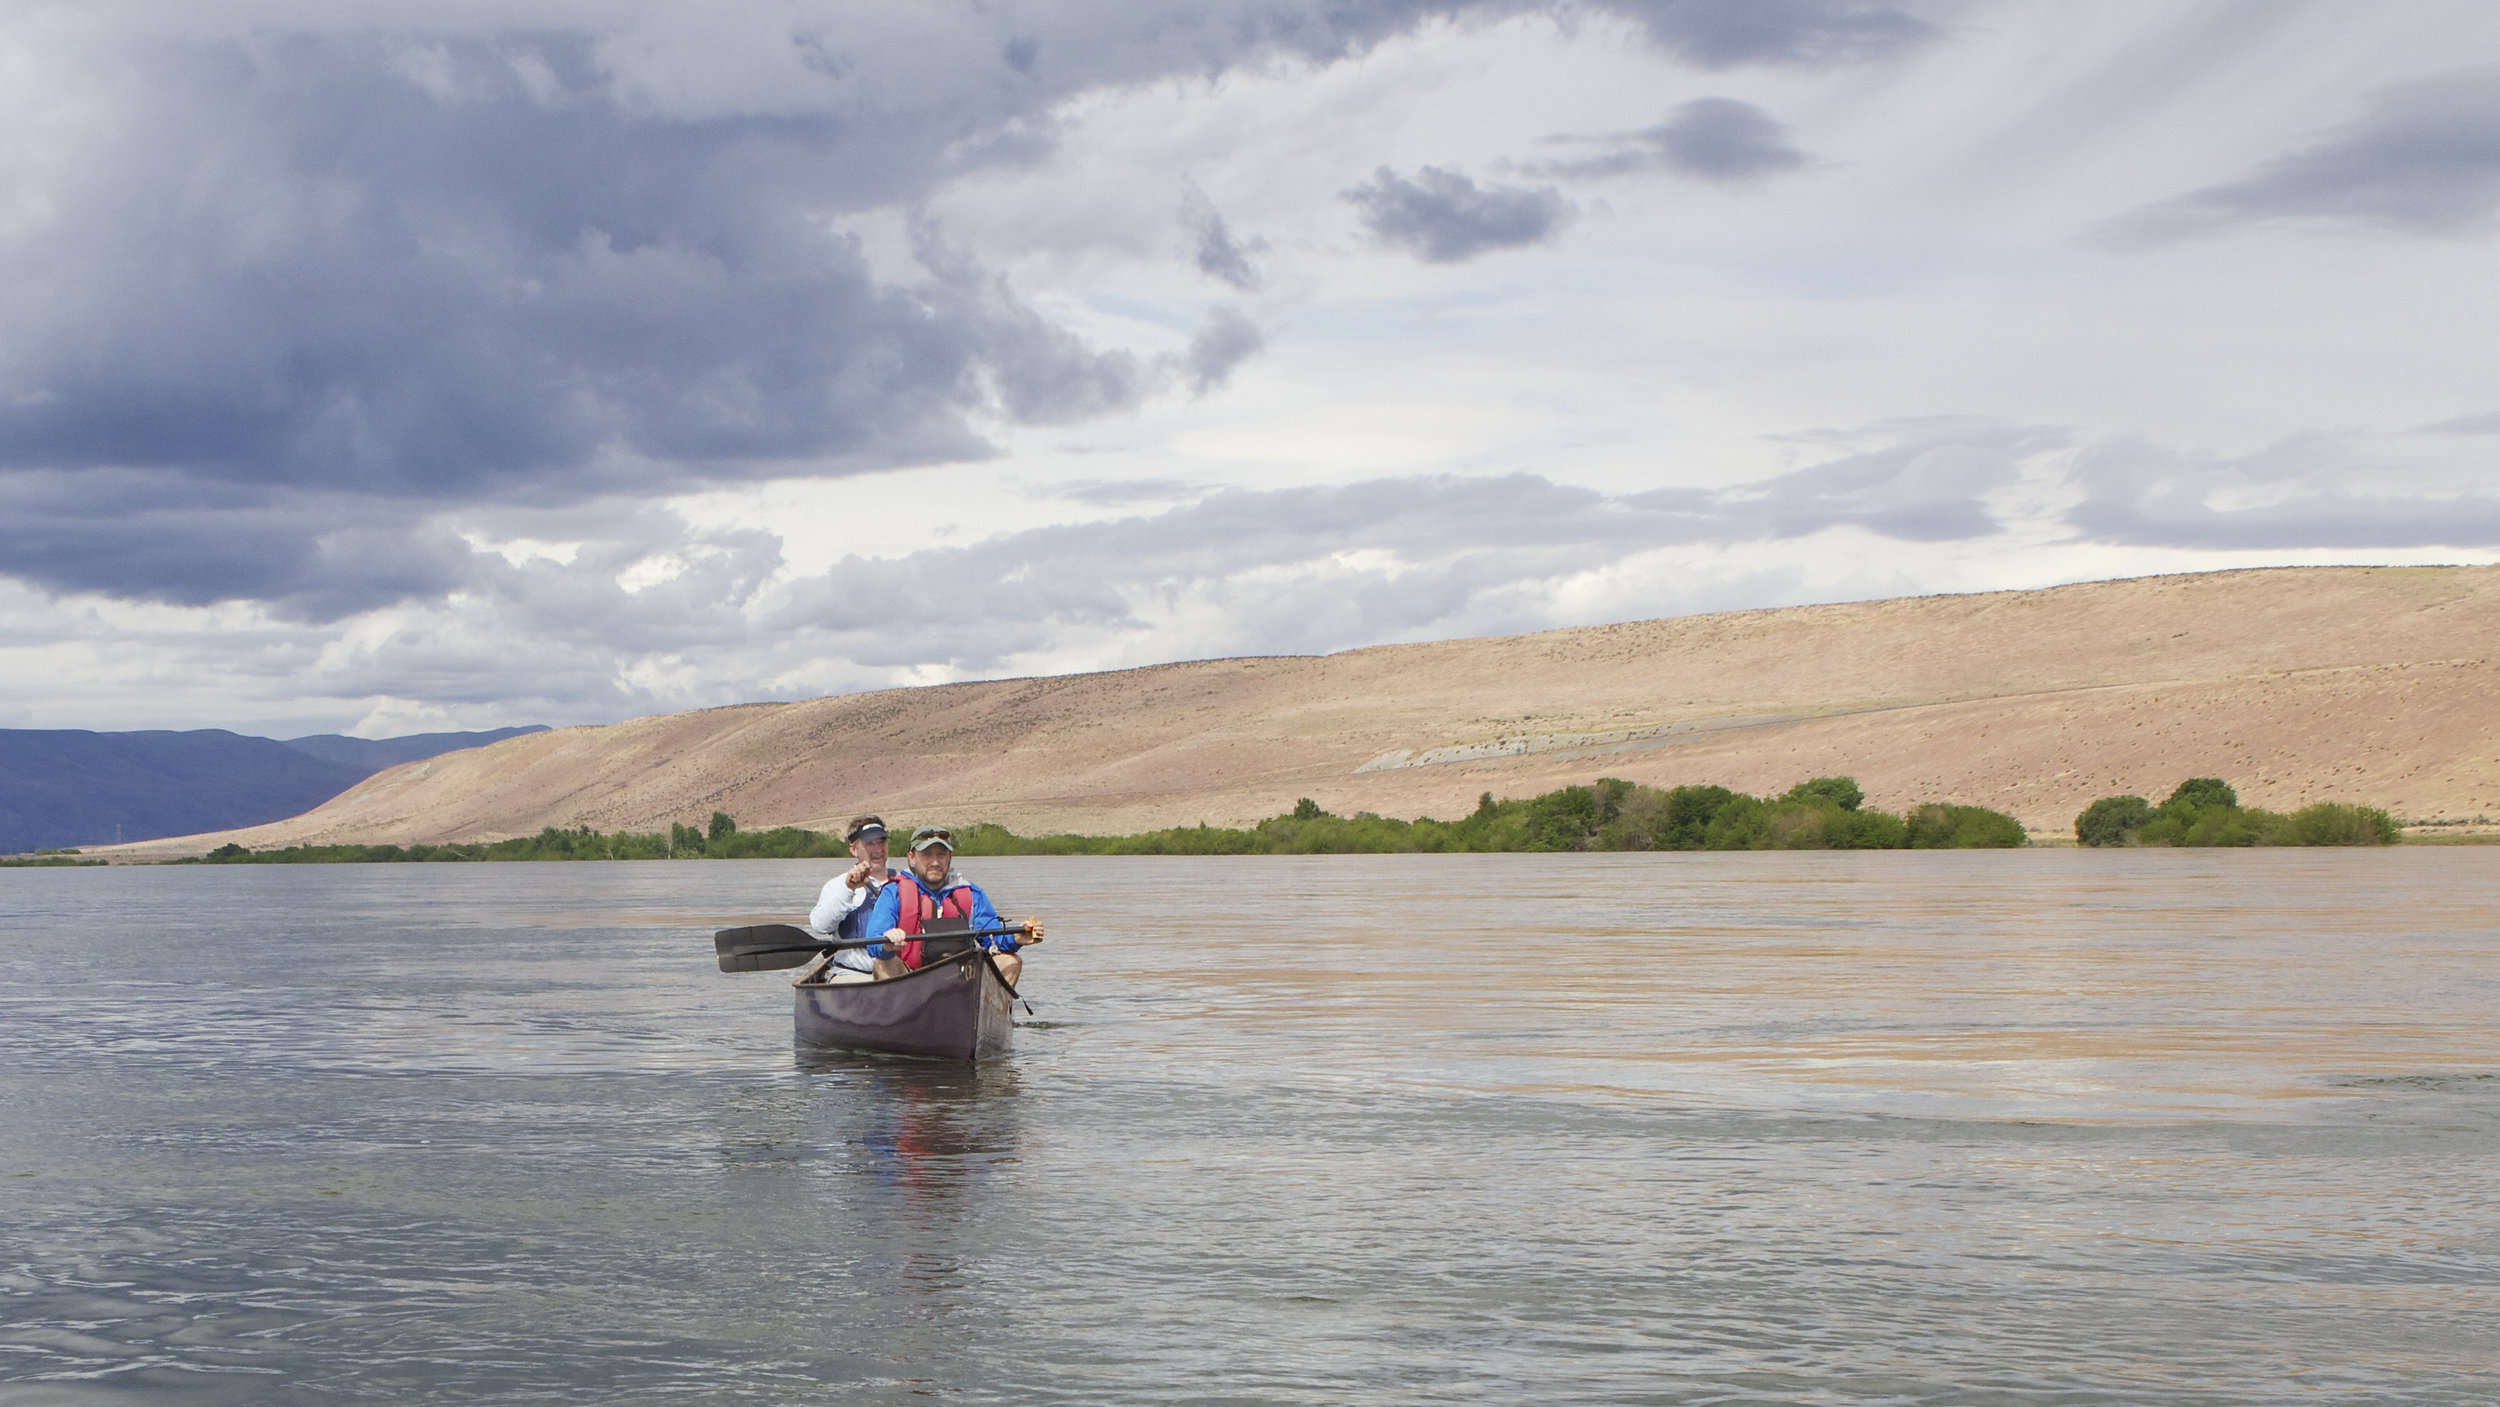 Canoers on the Columbia River near the Hanford Reach National Monument. Photo by Joel Rogers.